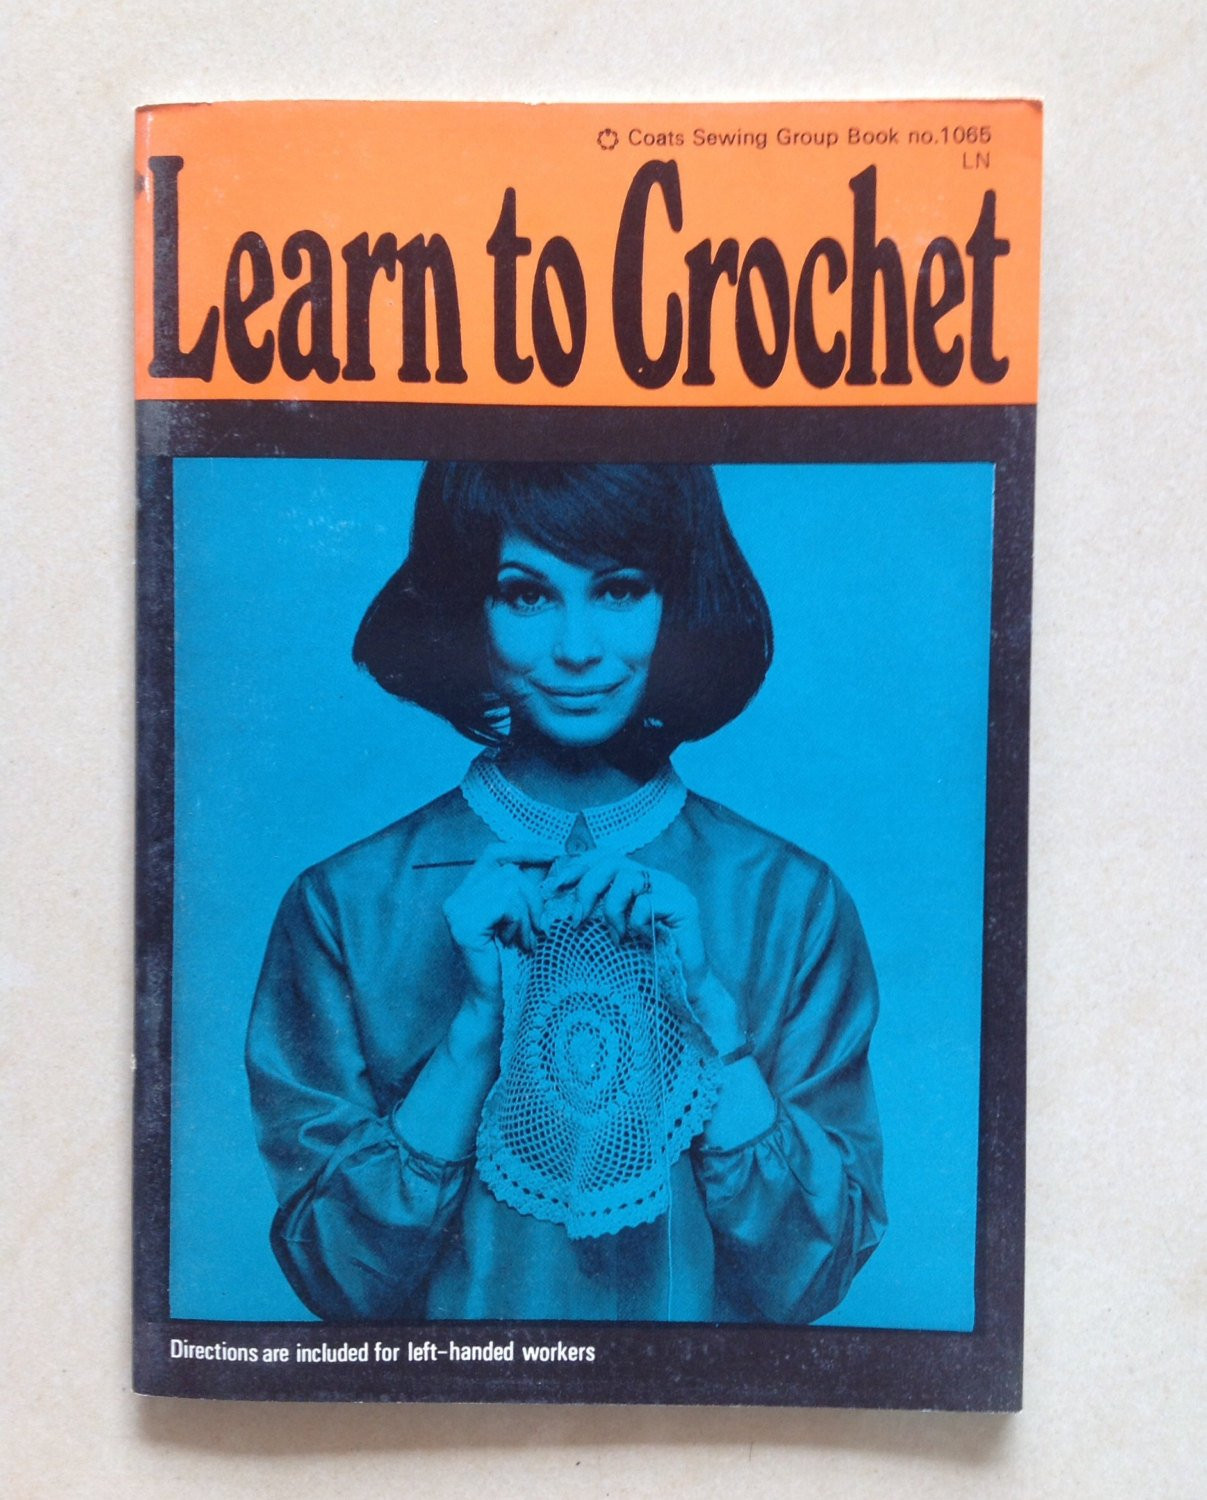 Learn to Crochet Fresh Learn to Crochet 1967 Coats Sewing Group Book No 1065 Ln Of Top 49 Pictures Learn to Crochet